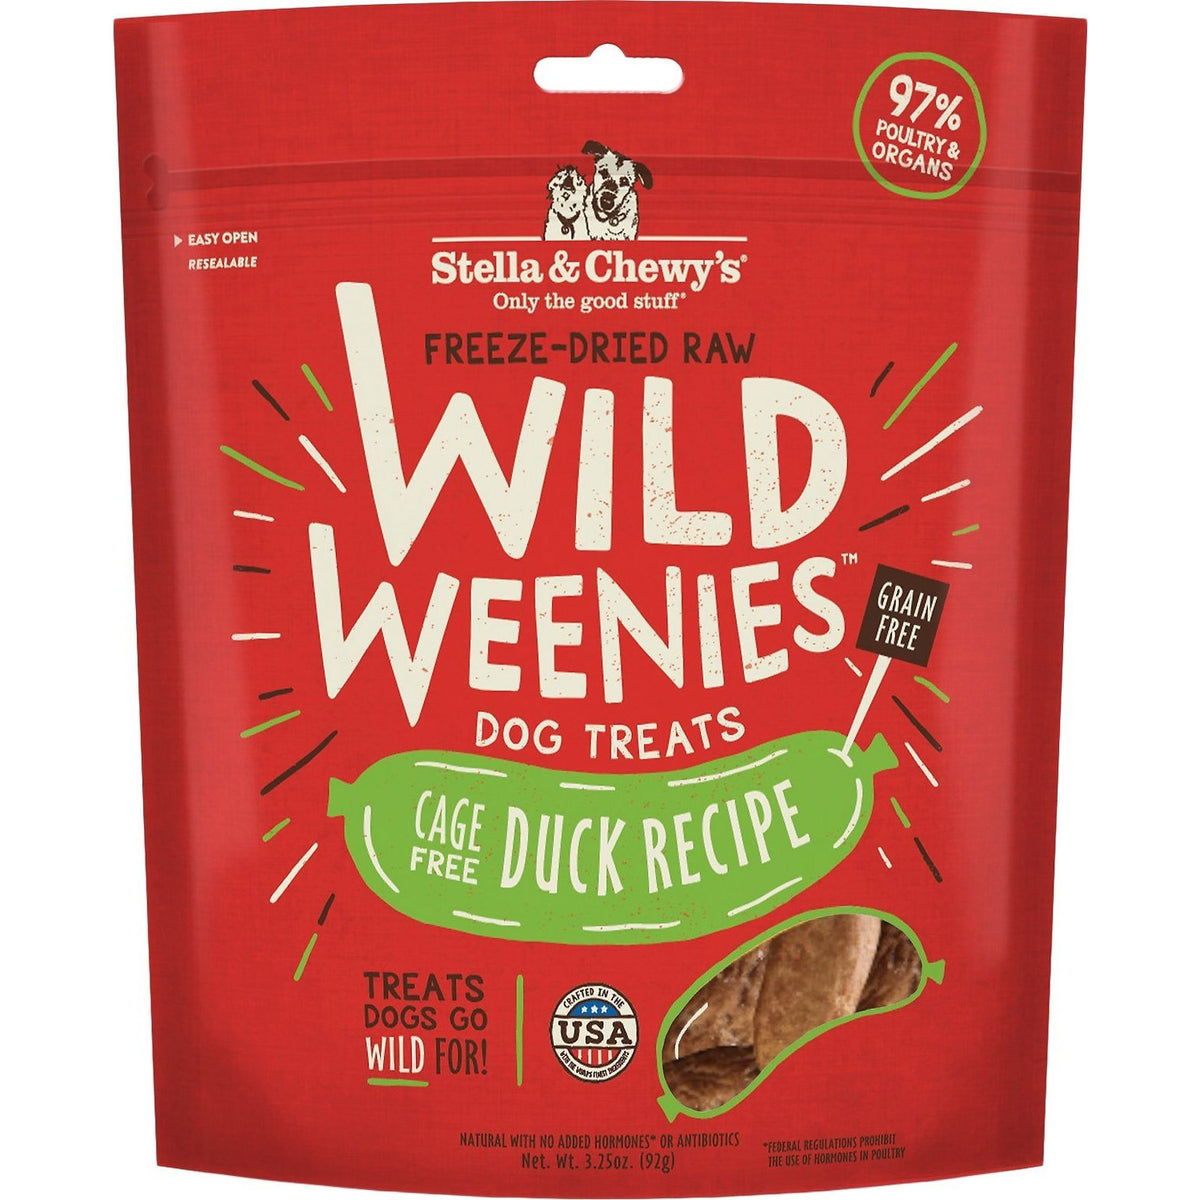 Stella & Chewy's Wild Weenies Dog Treats - Cage-Free Duck (3.25oz)